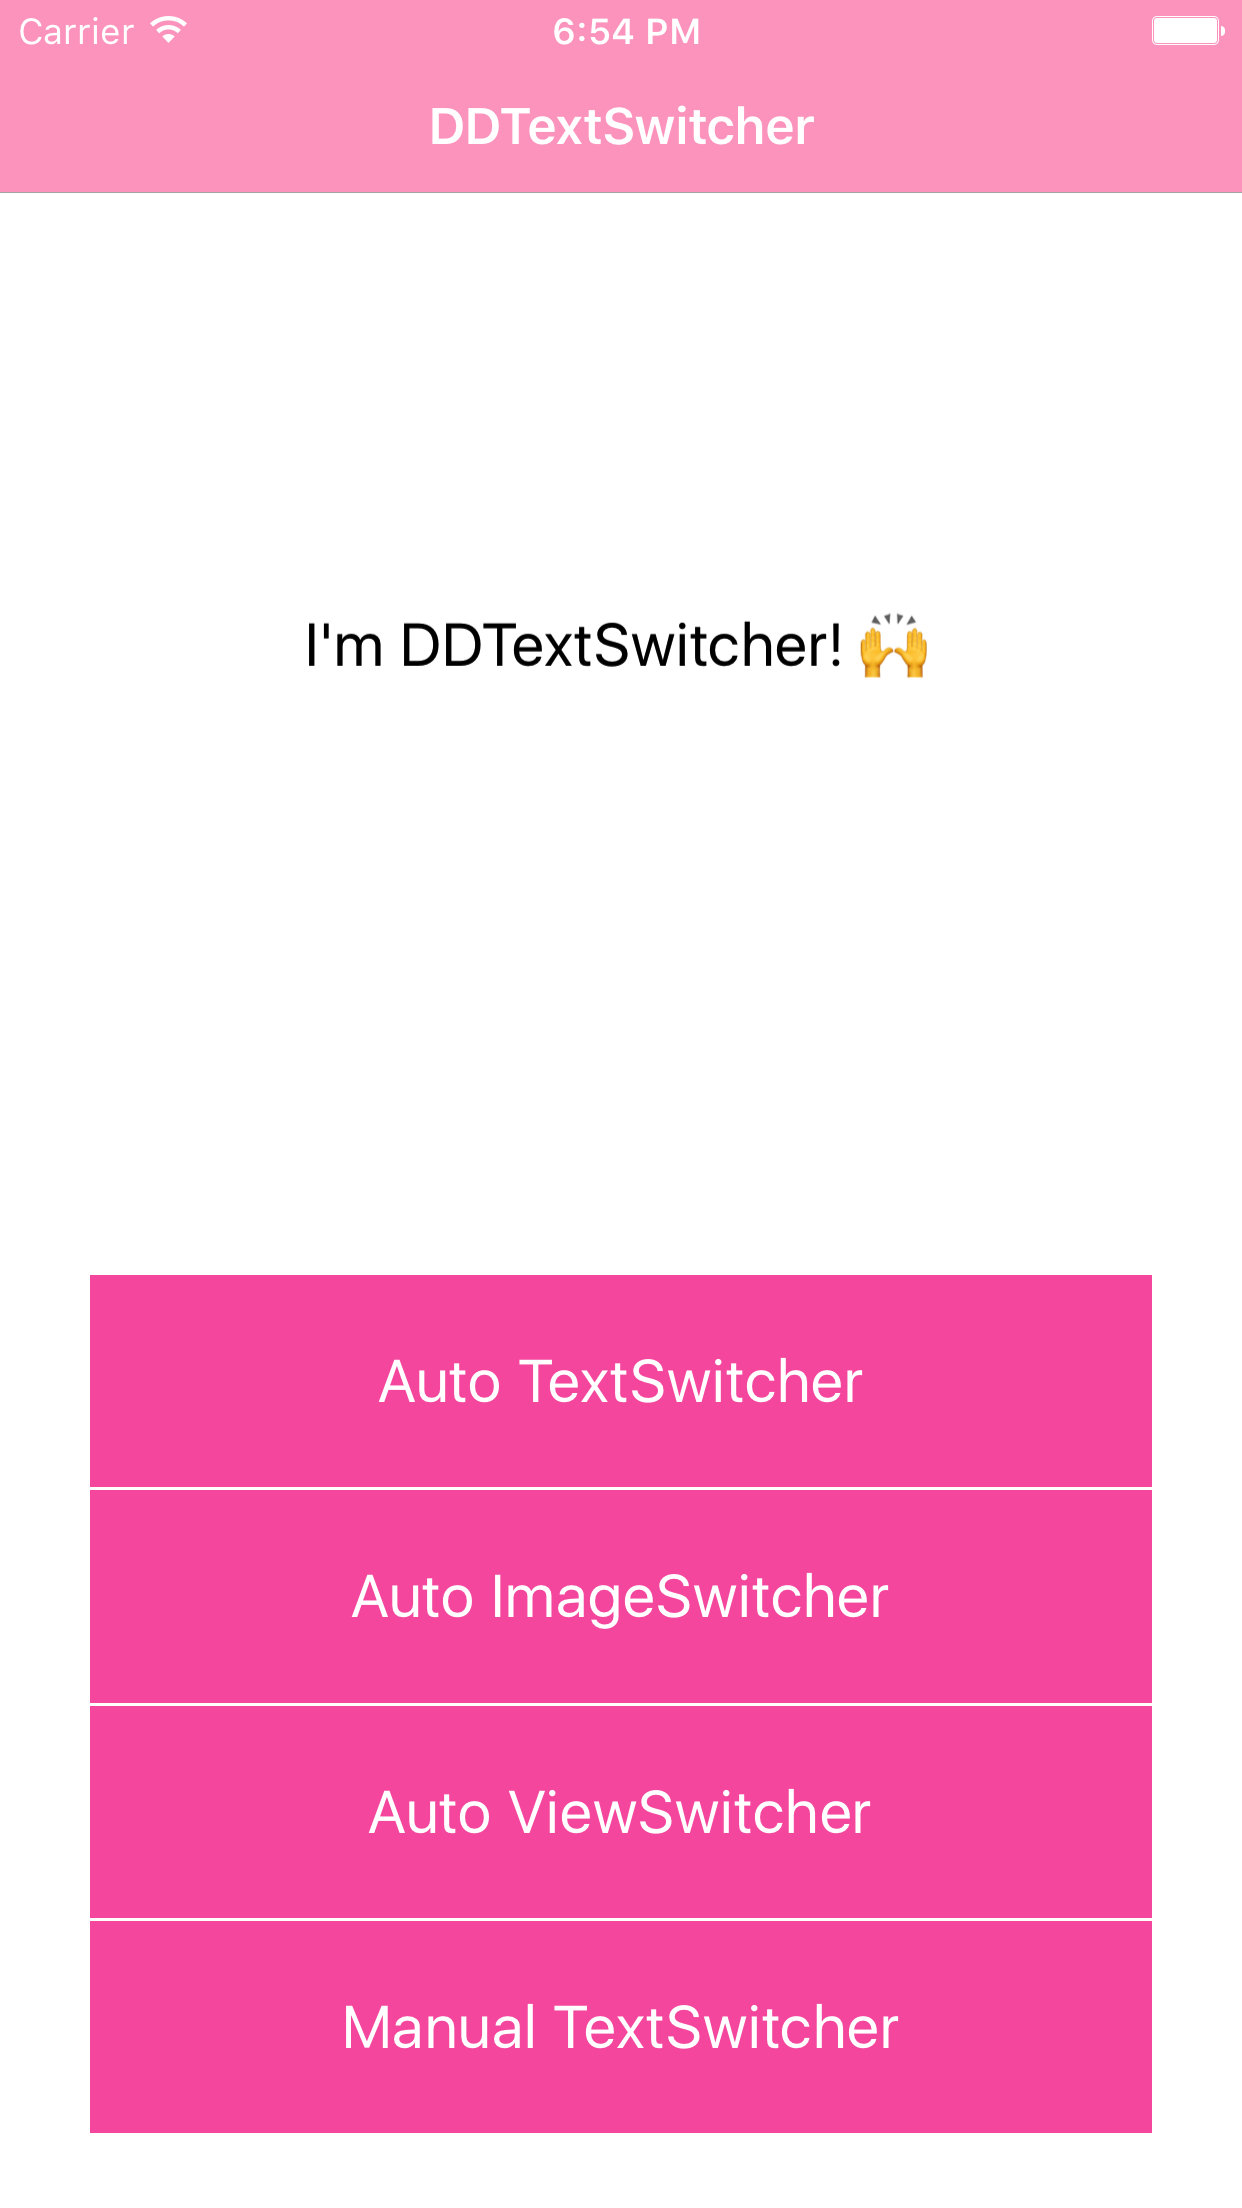 DDViewSwitcher screenshot